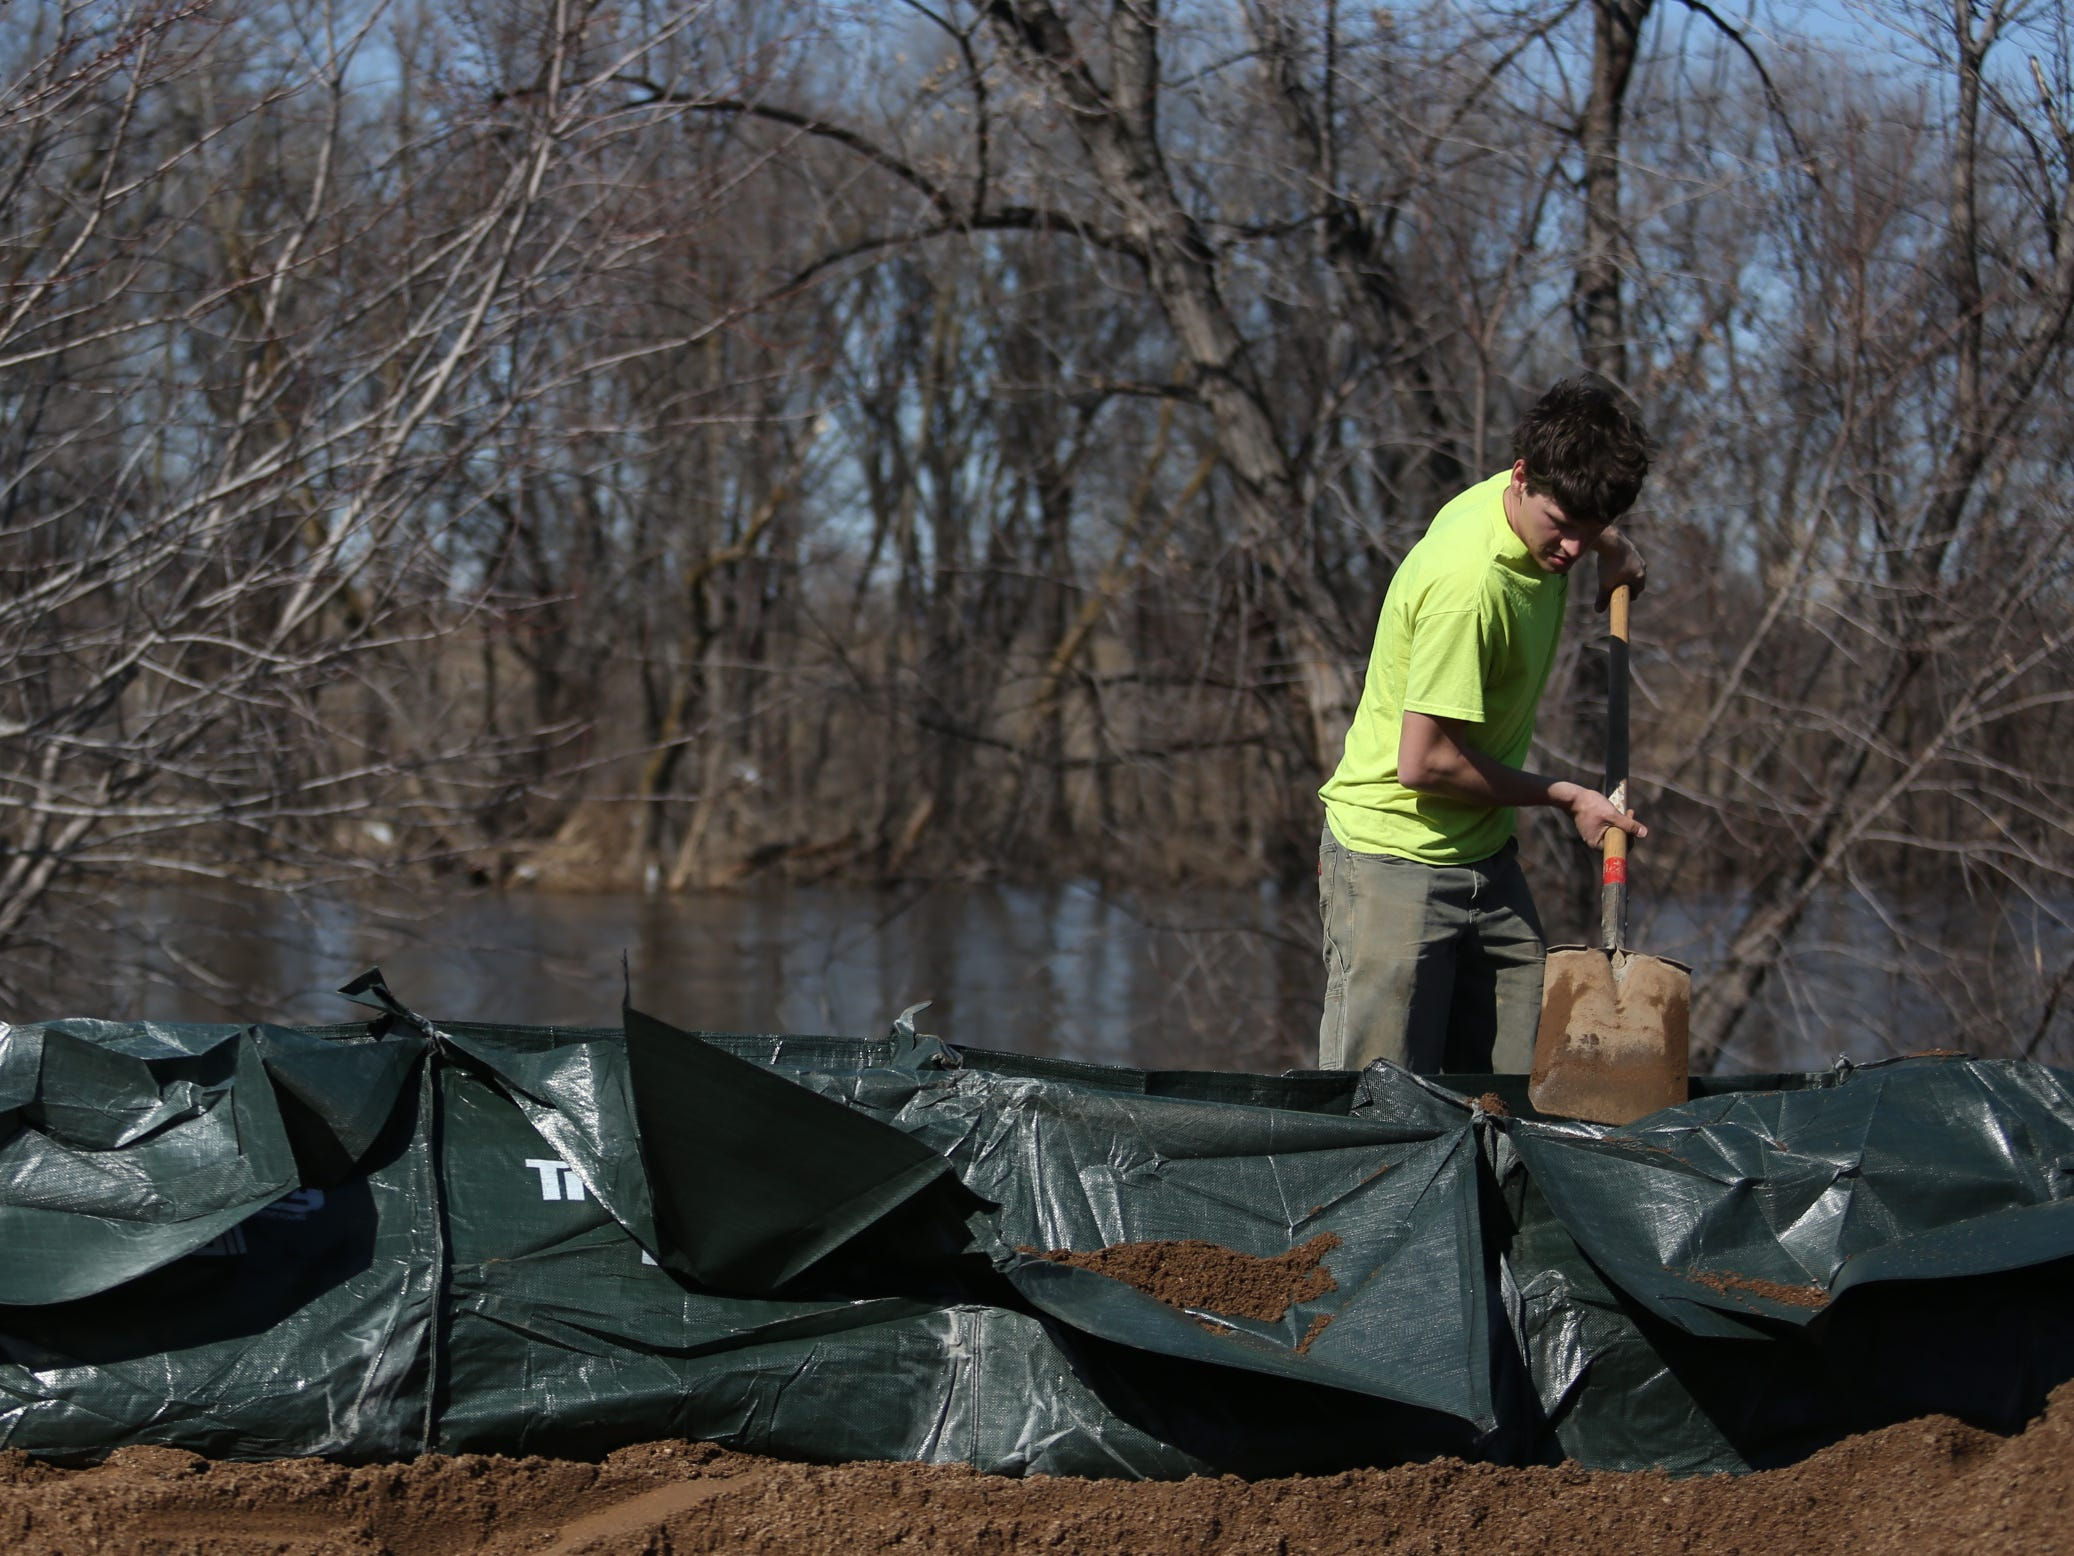 Allan-mark Iva, with First Rate Excavate Labor, packs down sand inside trap bags along the Big Sioux River and Tomar Park March 21, 2019. The City of Sioux Falls installed a trap bag system near the Lotta Street and Minnesota Avenue residential area in hopes of preventing flooding early next week.